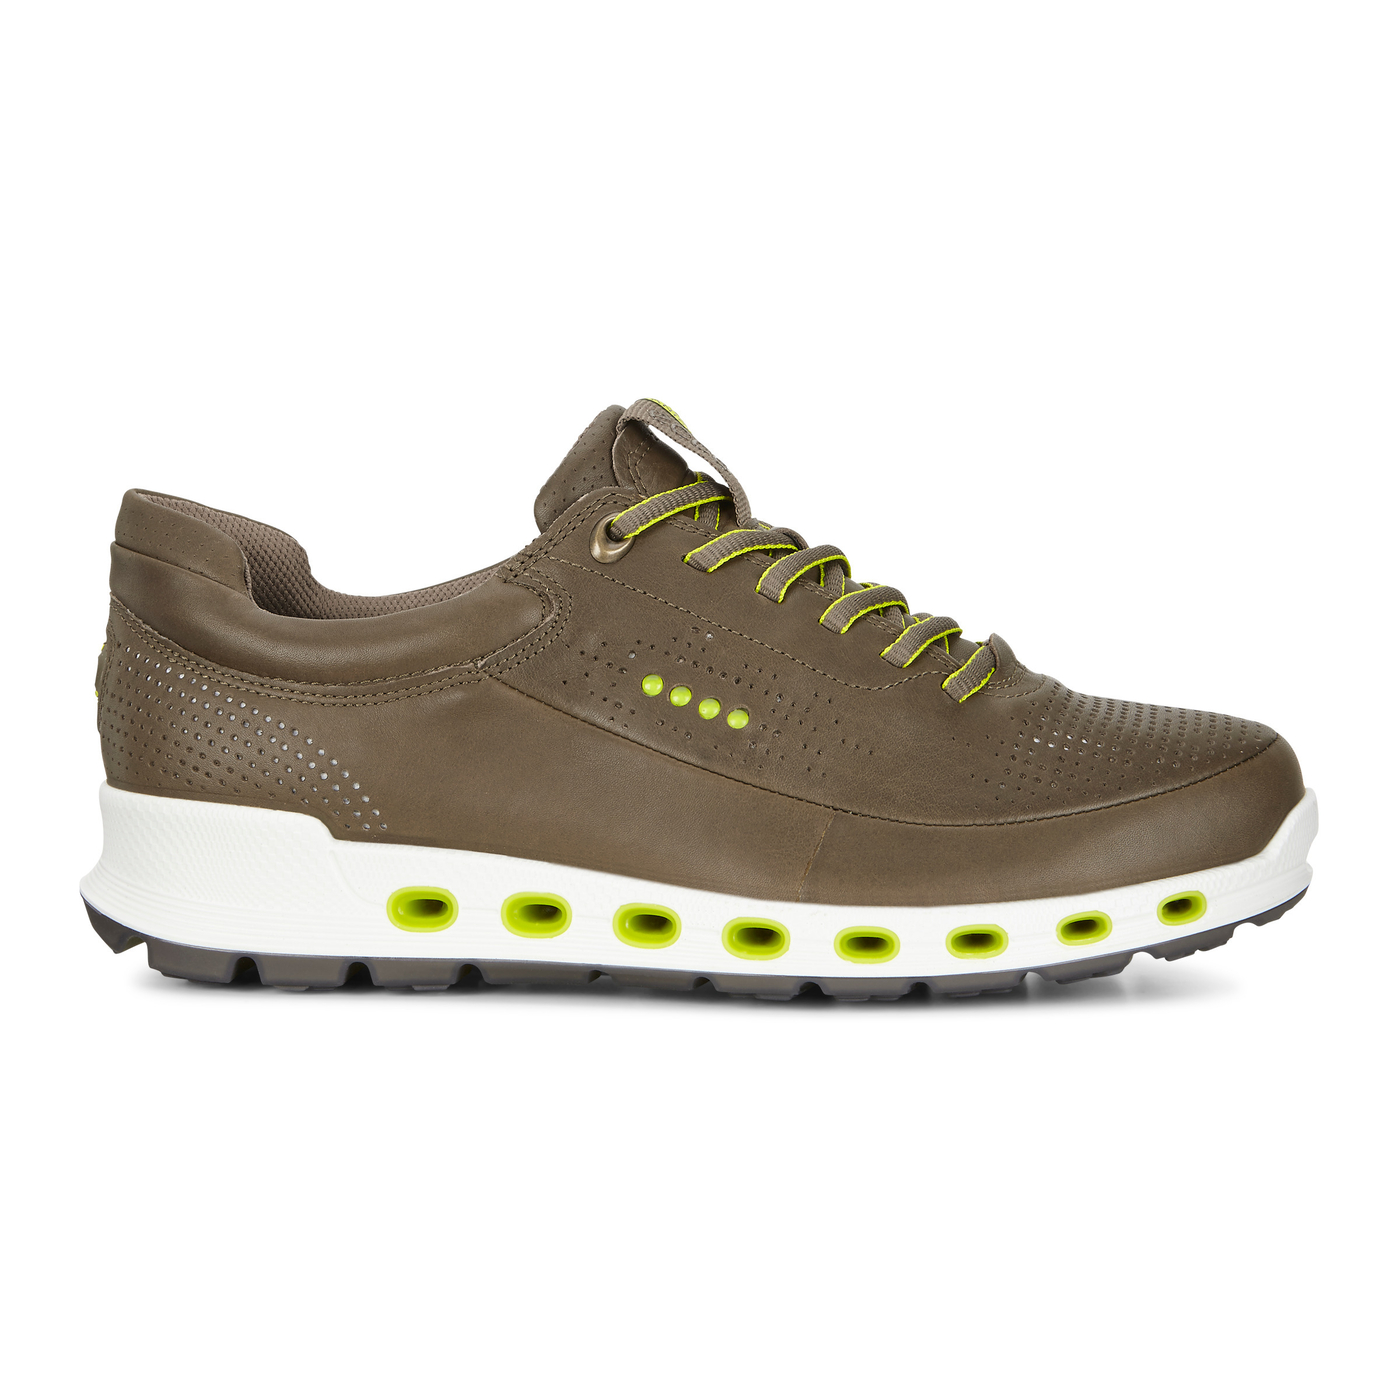 ECCO COOL2.0 Mens GTX